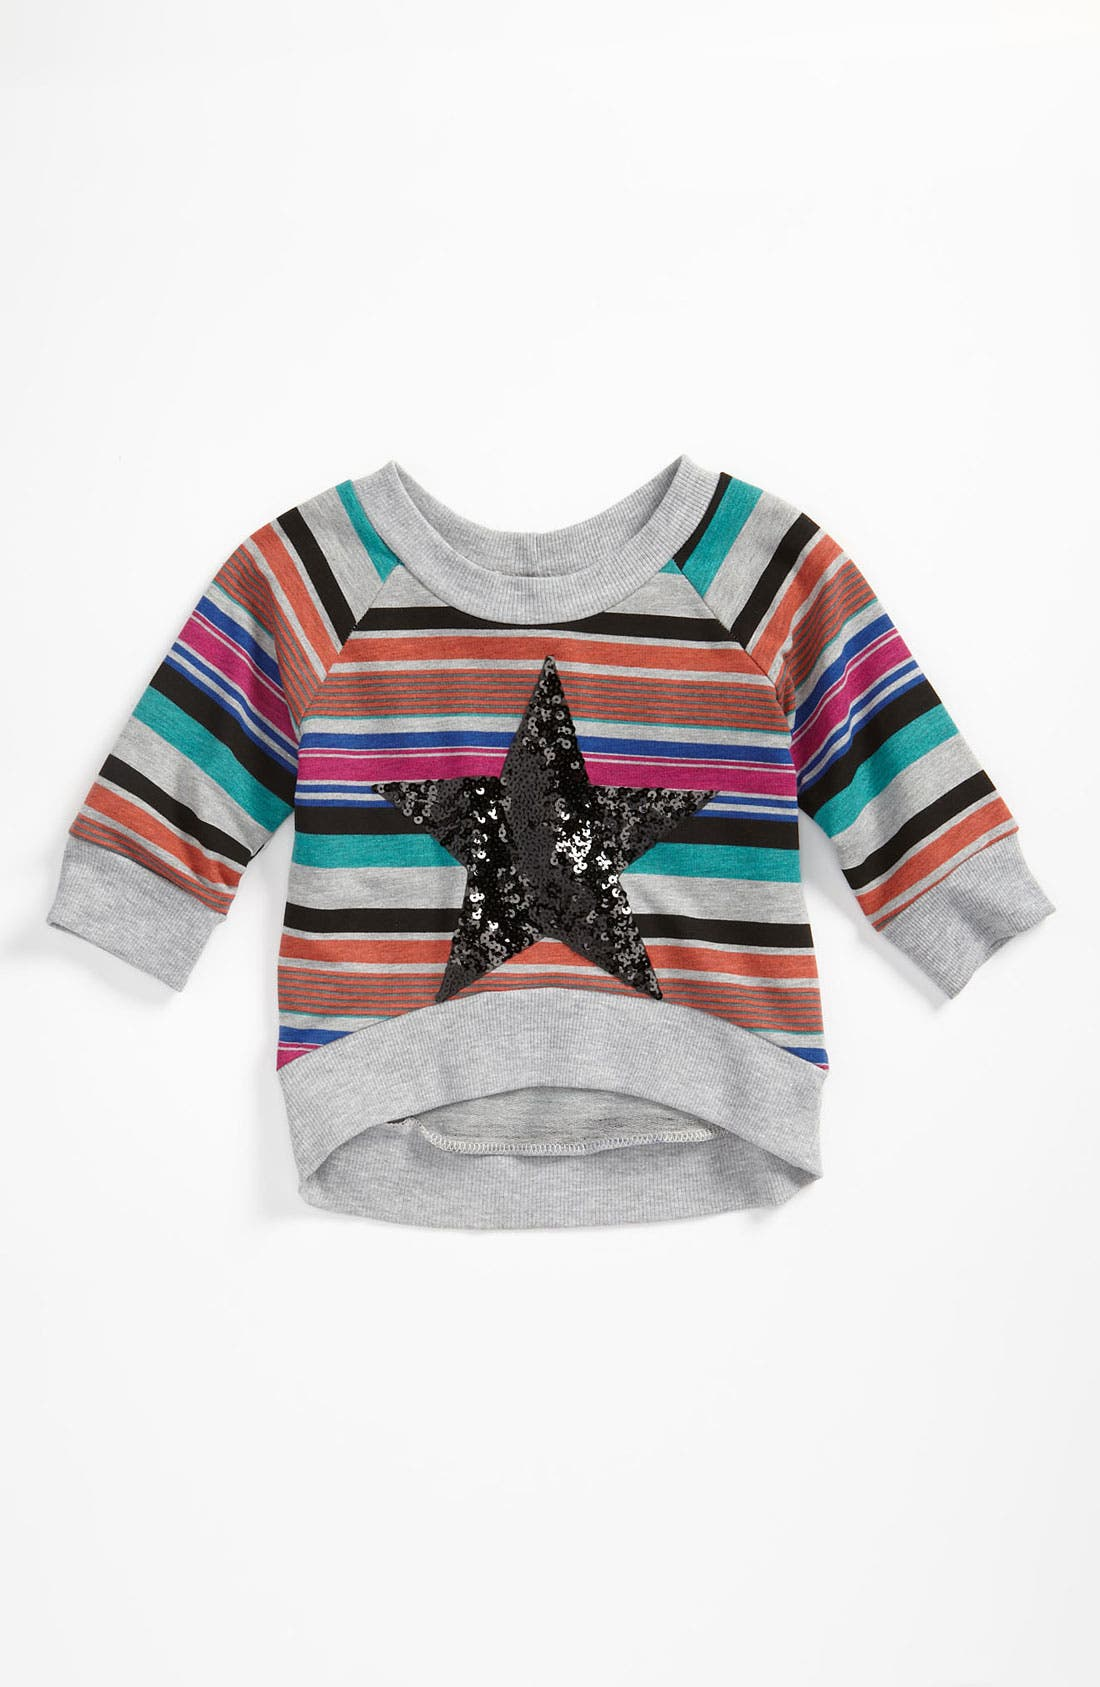 Alternate Image 1 Selected - Miken Clothing Sequin Pullover Top (Toddler)